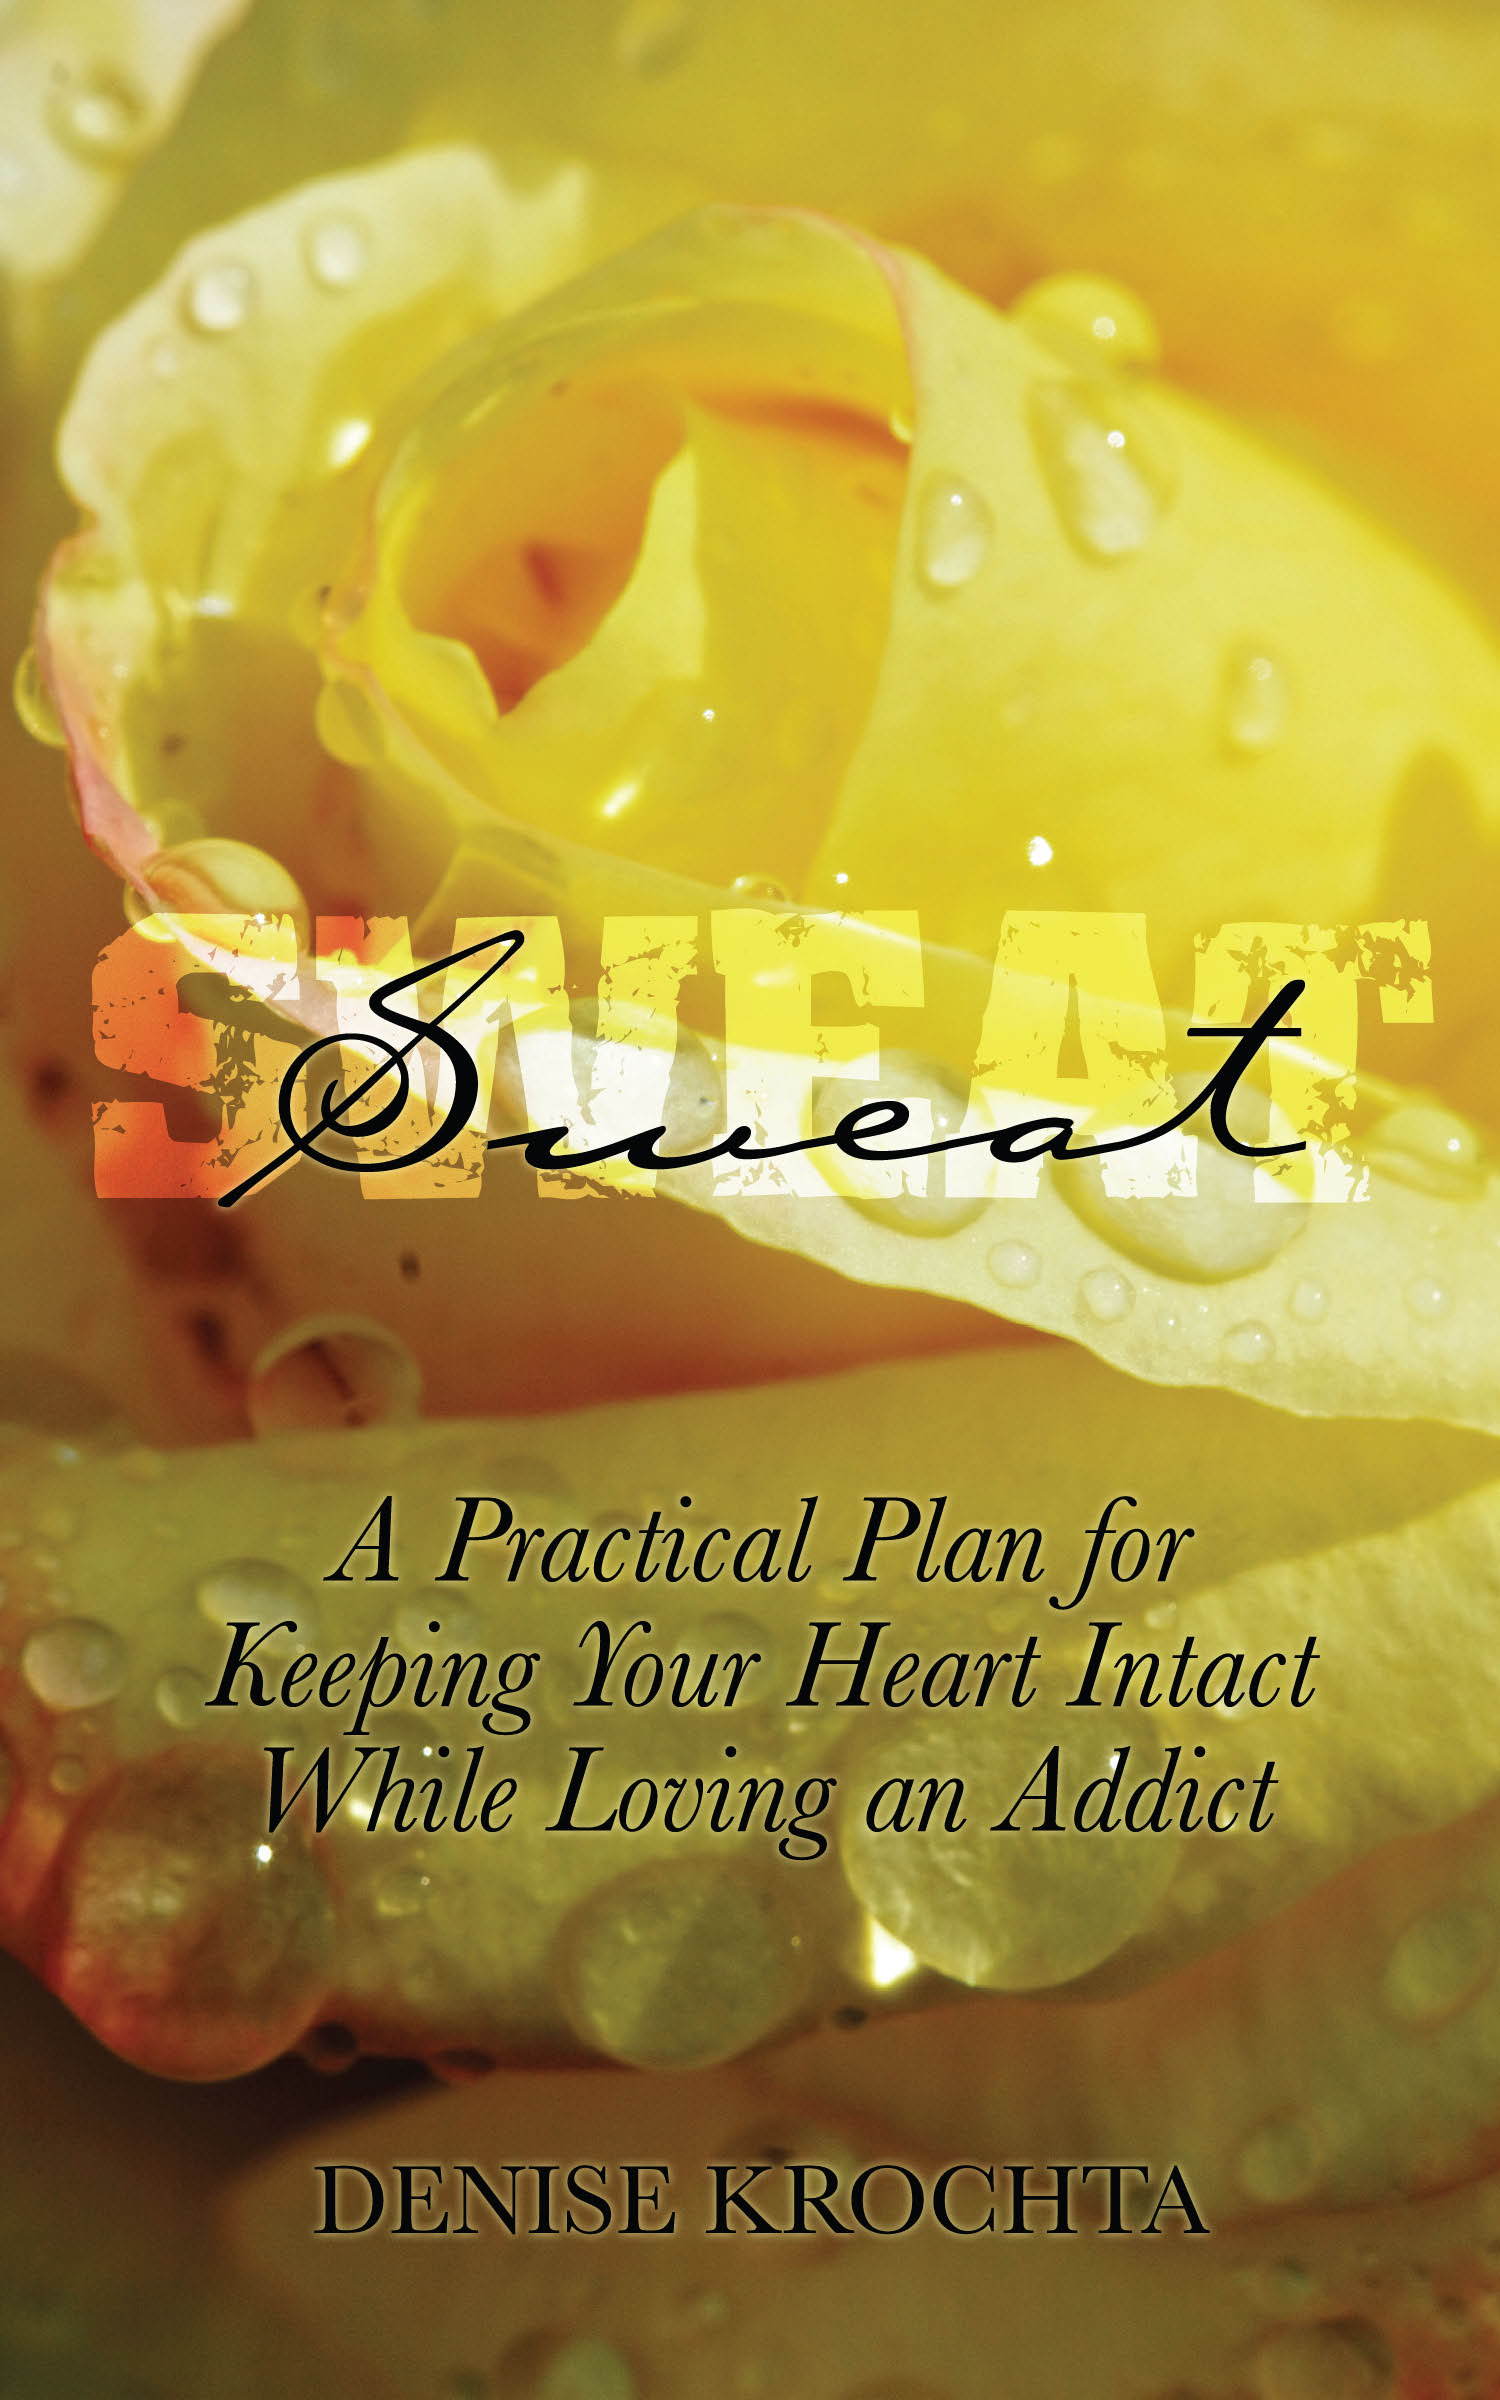 Sweat: A Practical Plan For Keeping Your Heart Intact While Loving an Addict